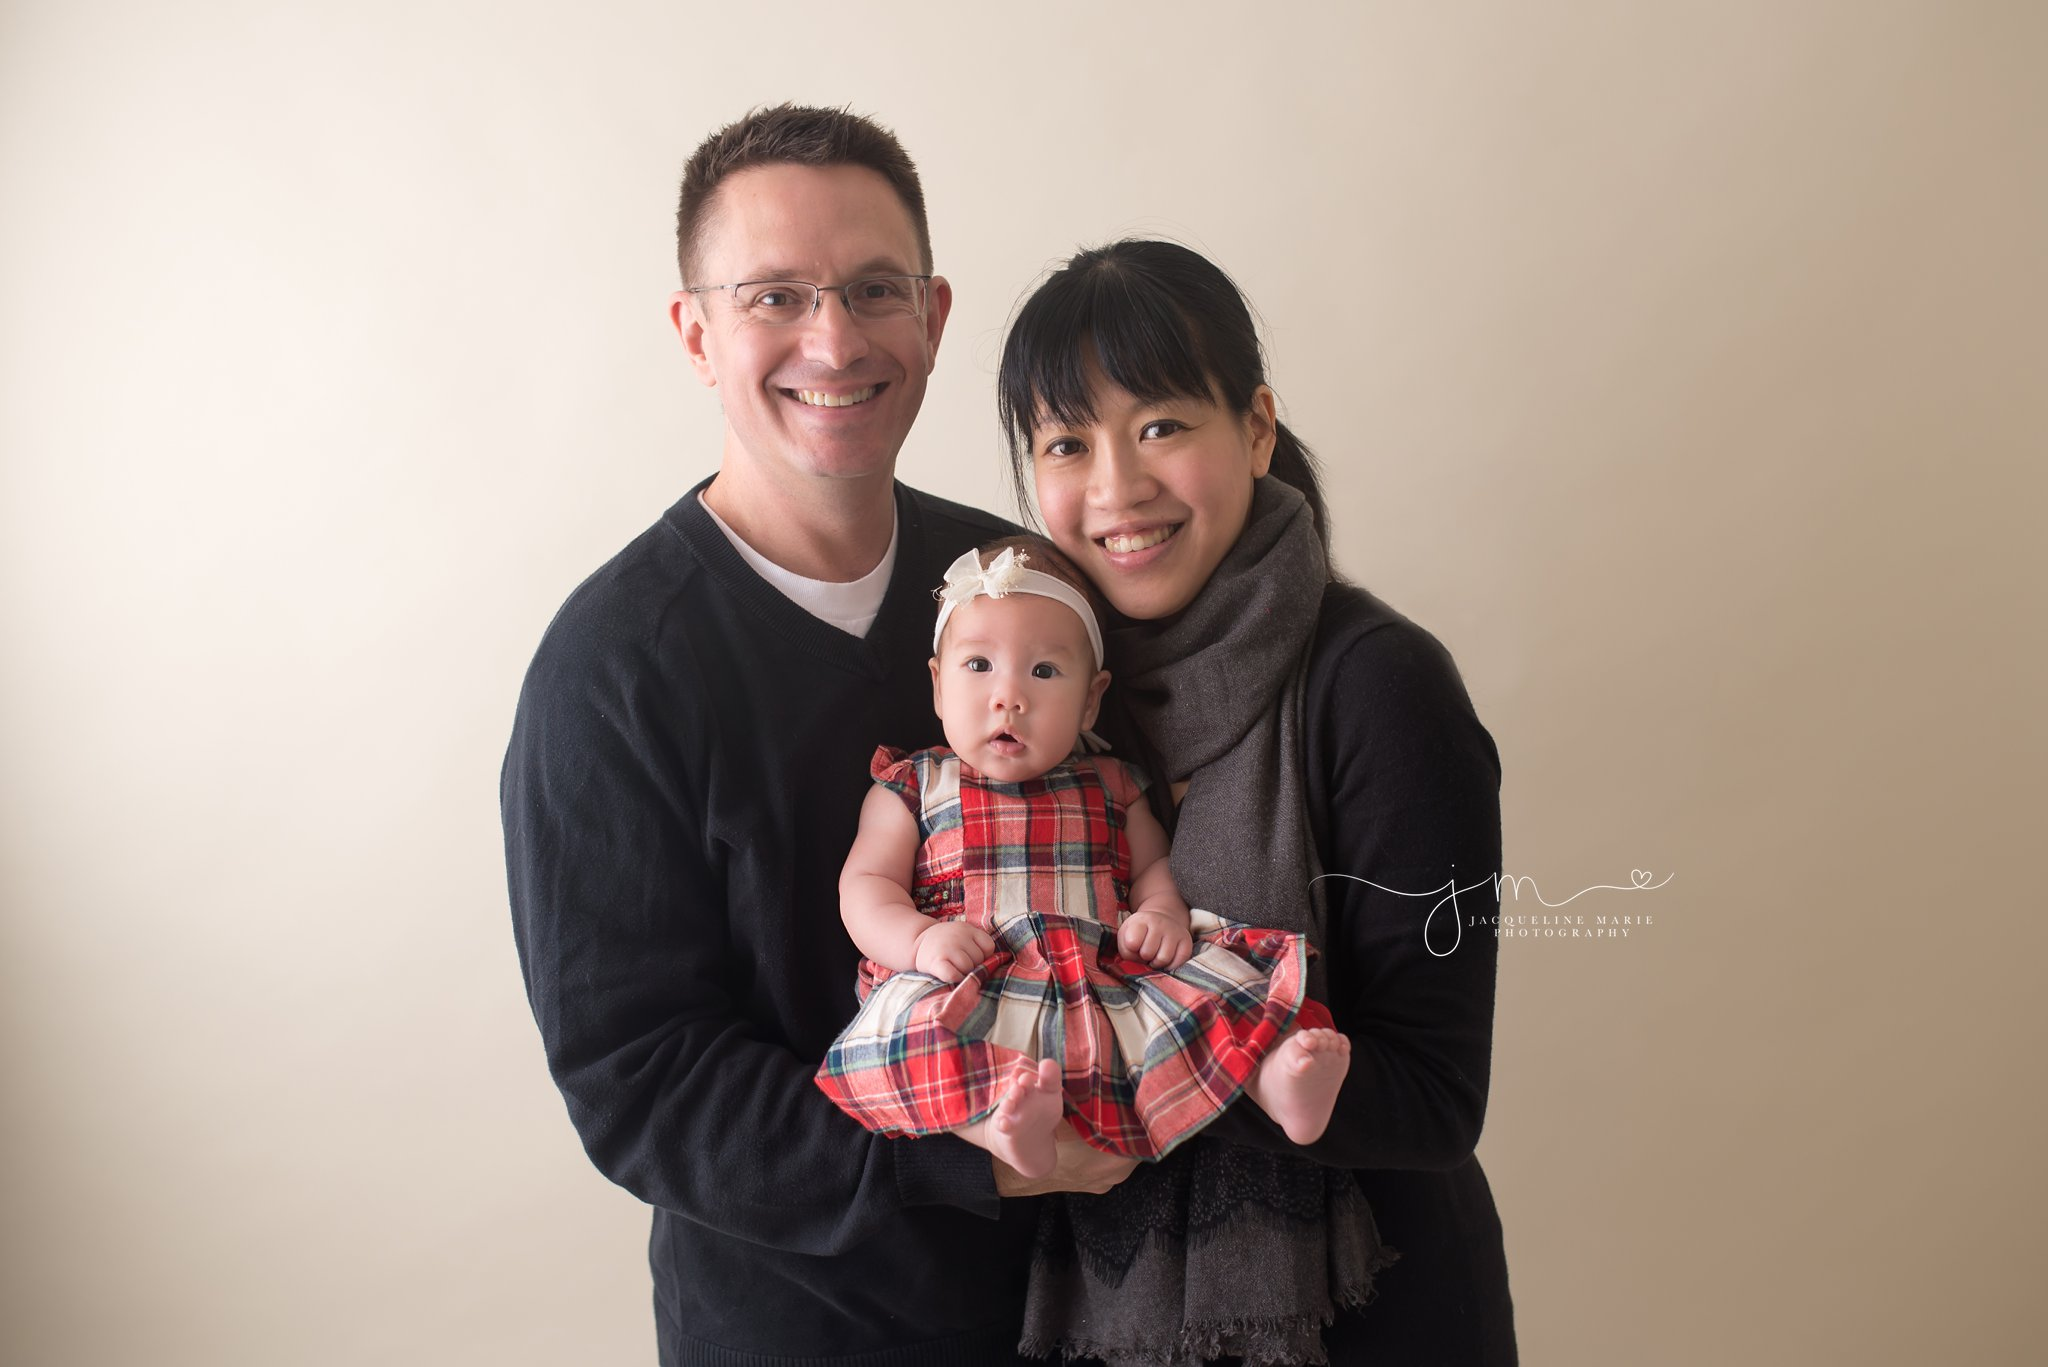 Mother and father hold 3 month old baby girl as she wears her Christmas dress for photography portrait session in Columbus Ohio